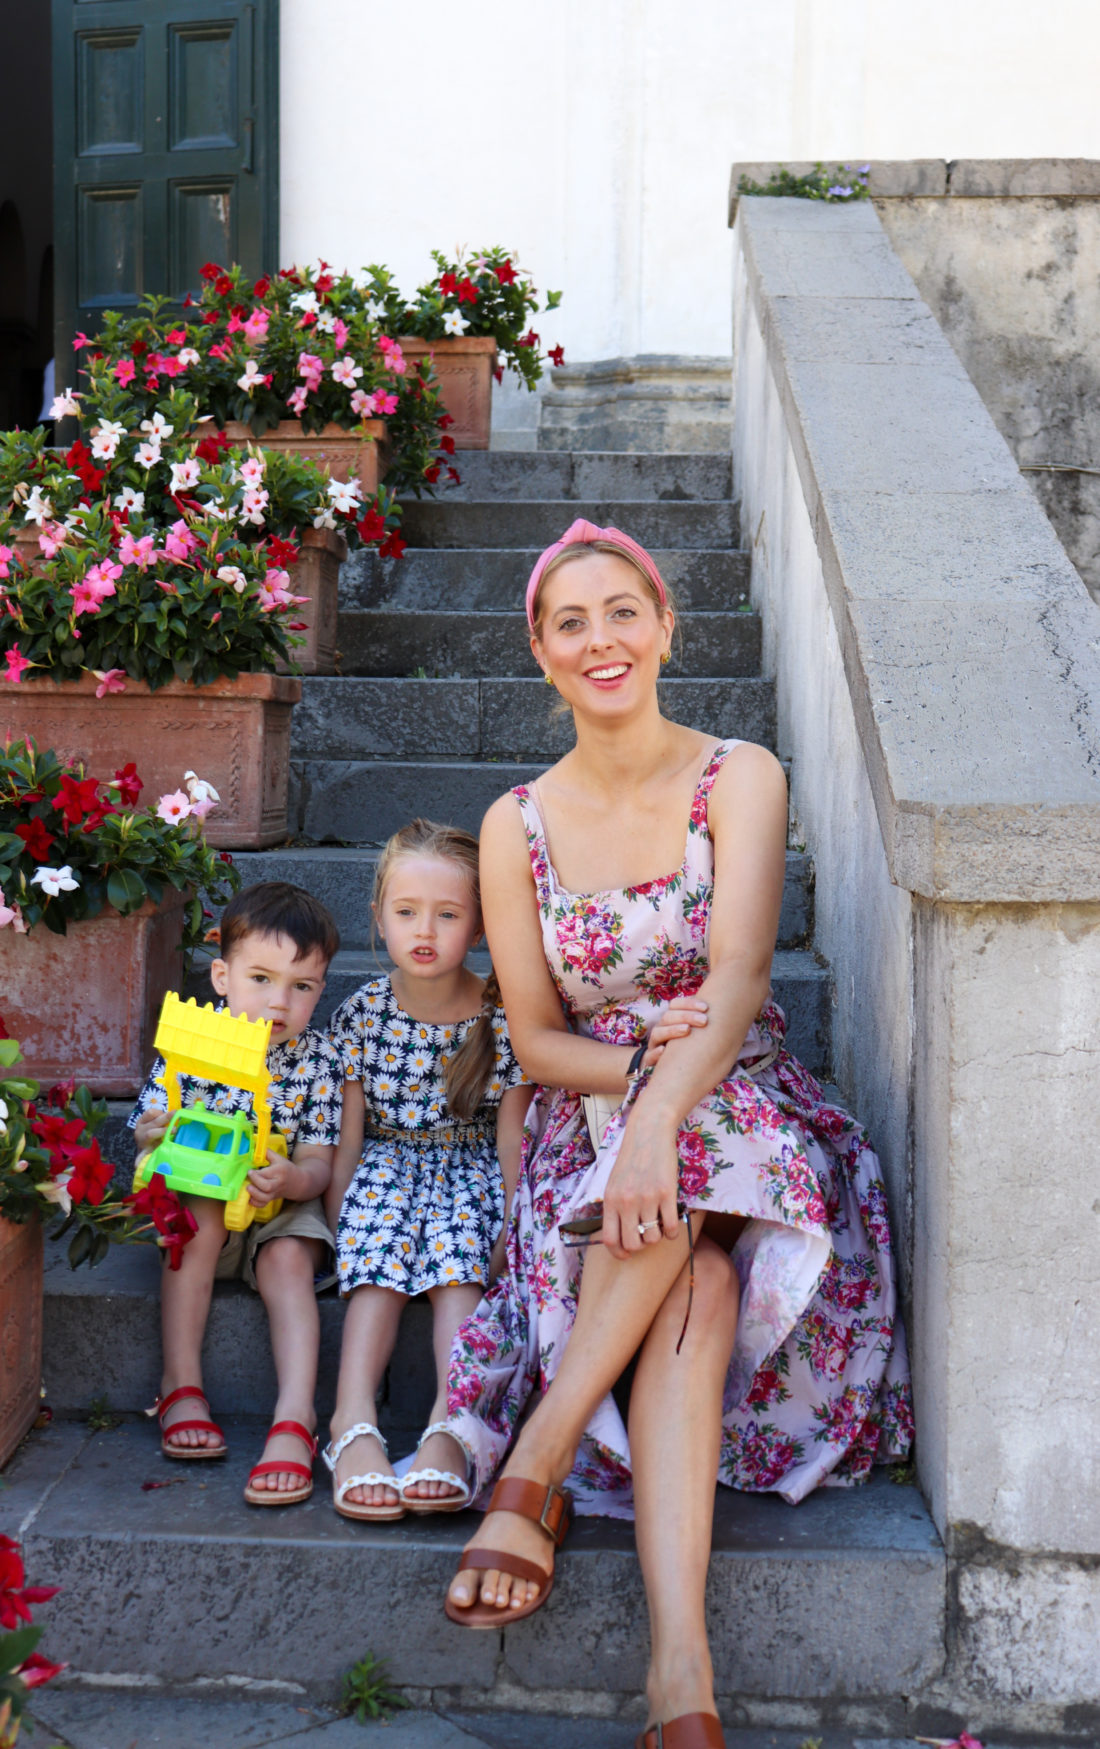 Eva Amurri Martino and her kids Marlowe and Major in Rome